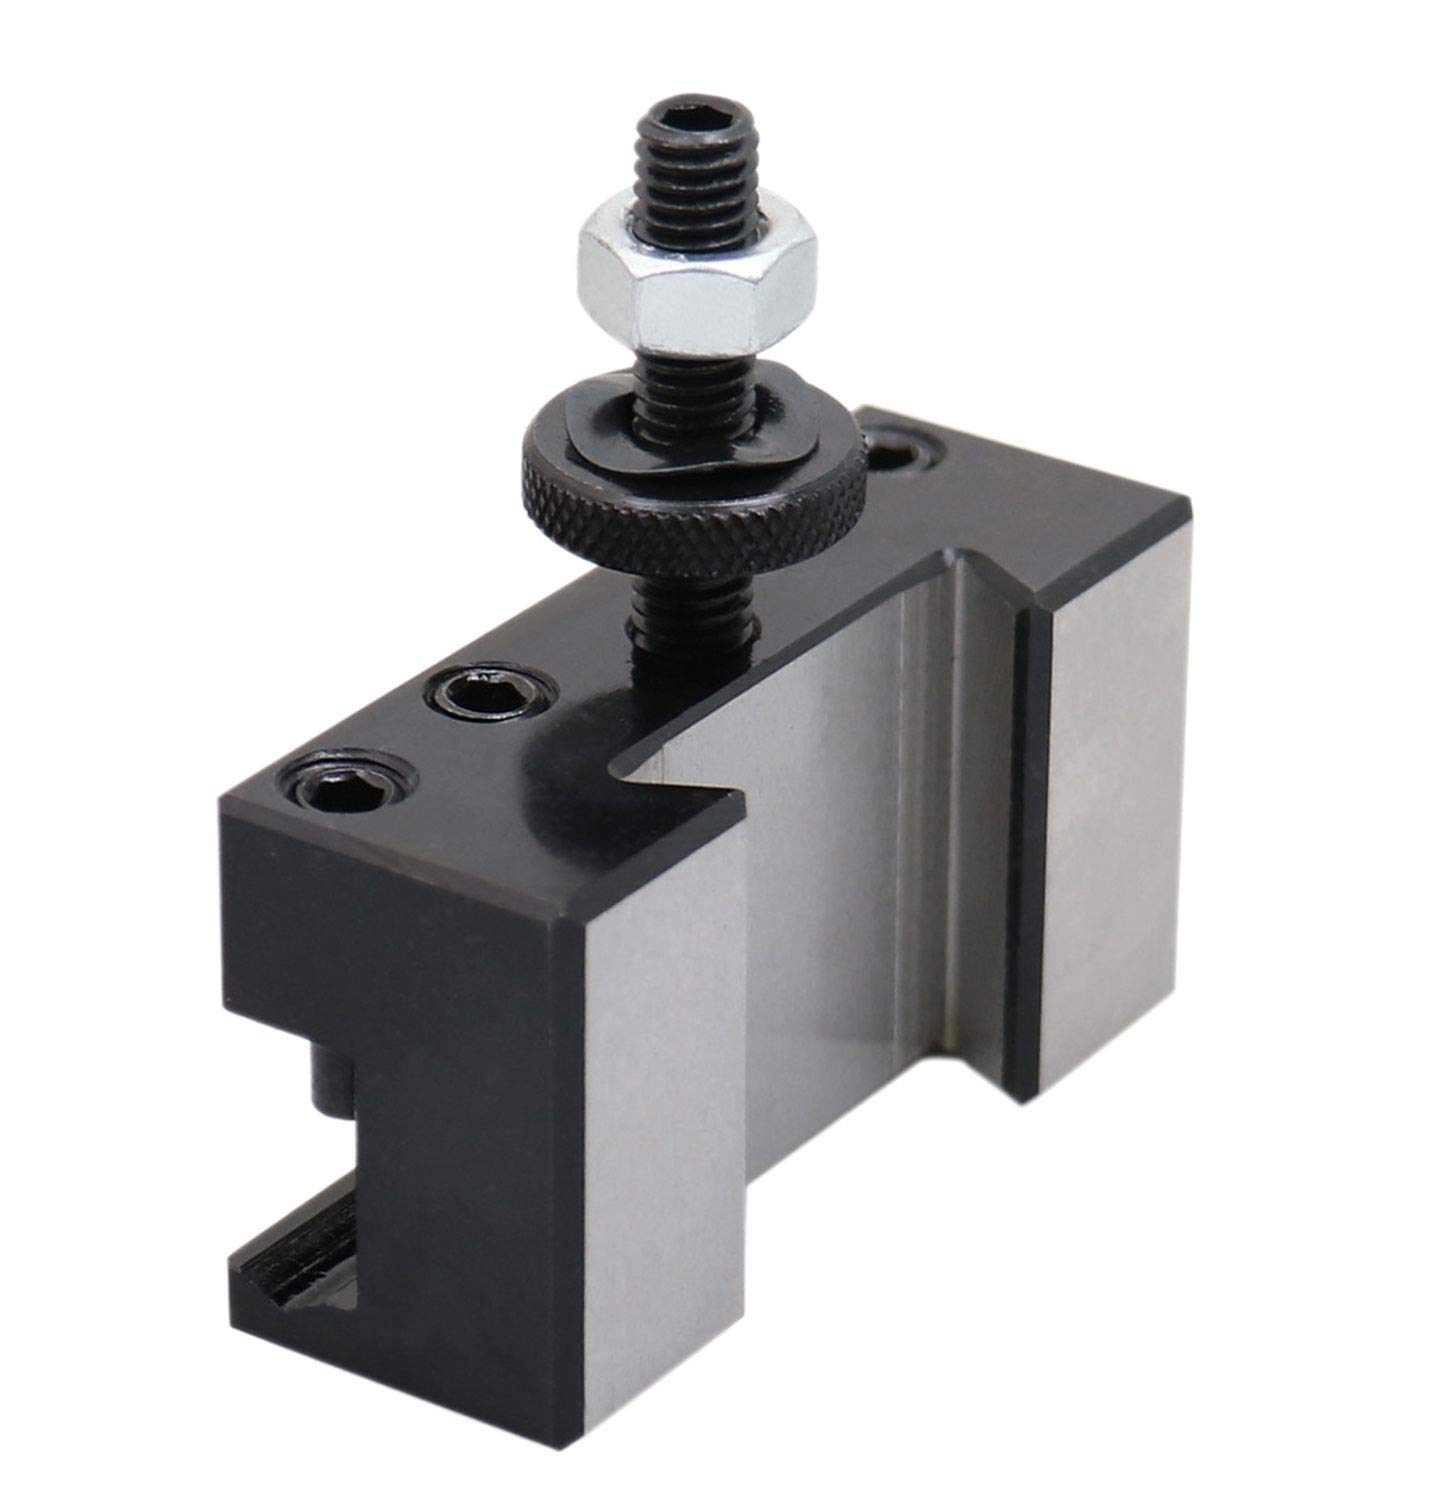 Accusize Industrial Tools Oxa Boring Turning and Facing Tool Holder for Mini Lathe and 1//2 Tools 0250-0002 Style 2